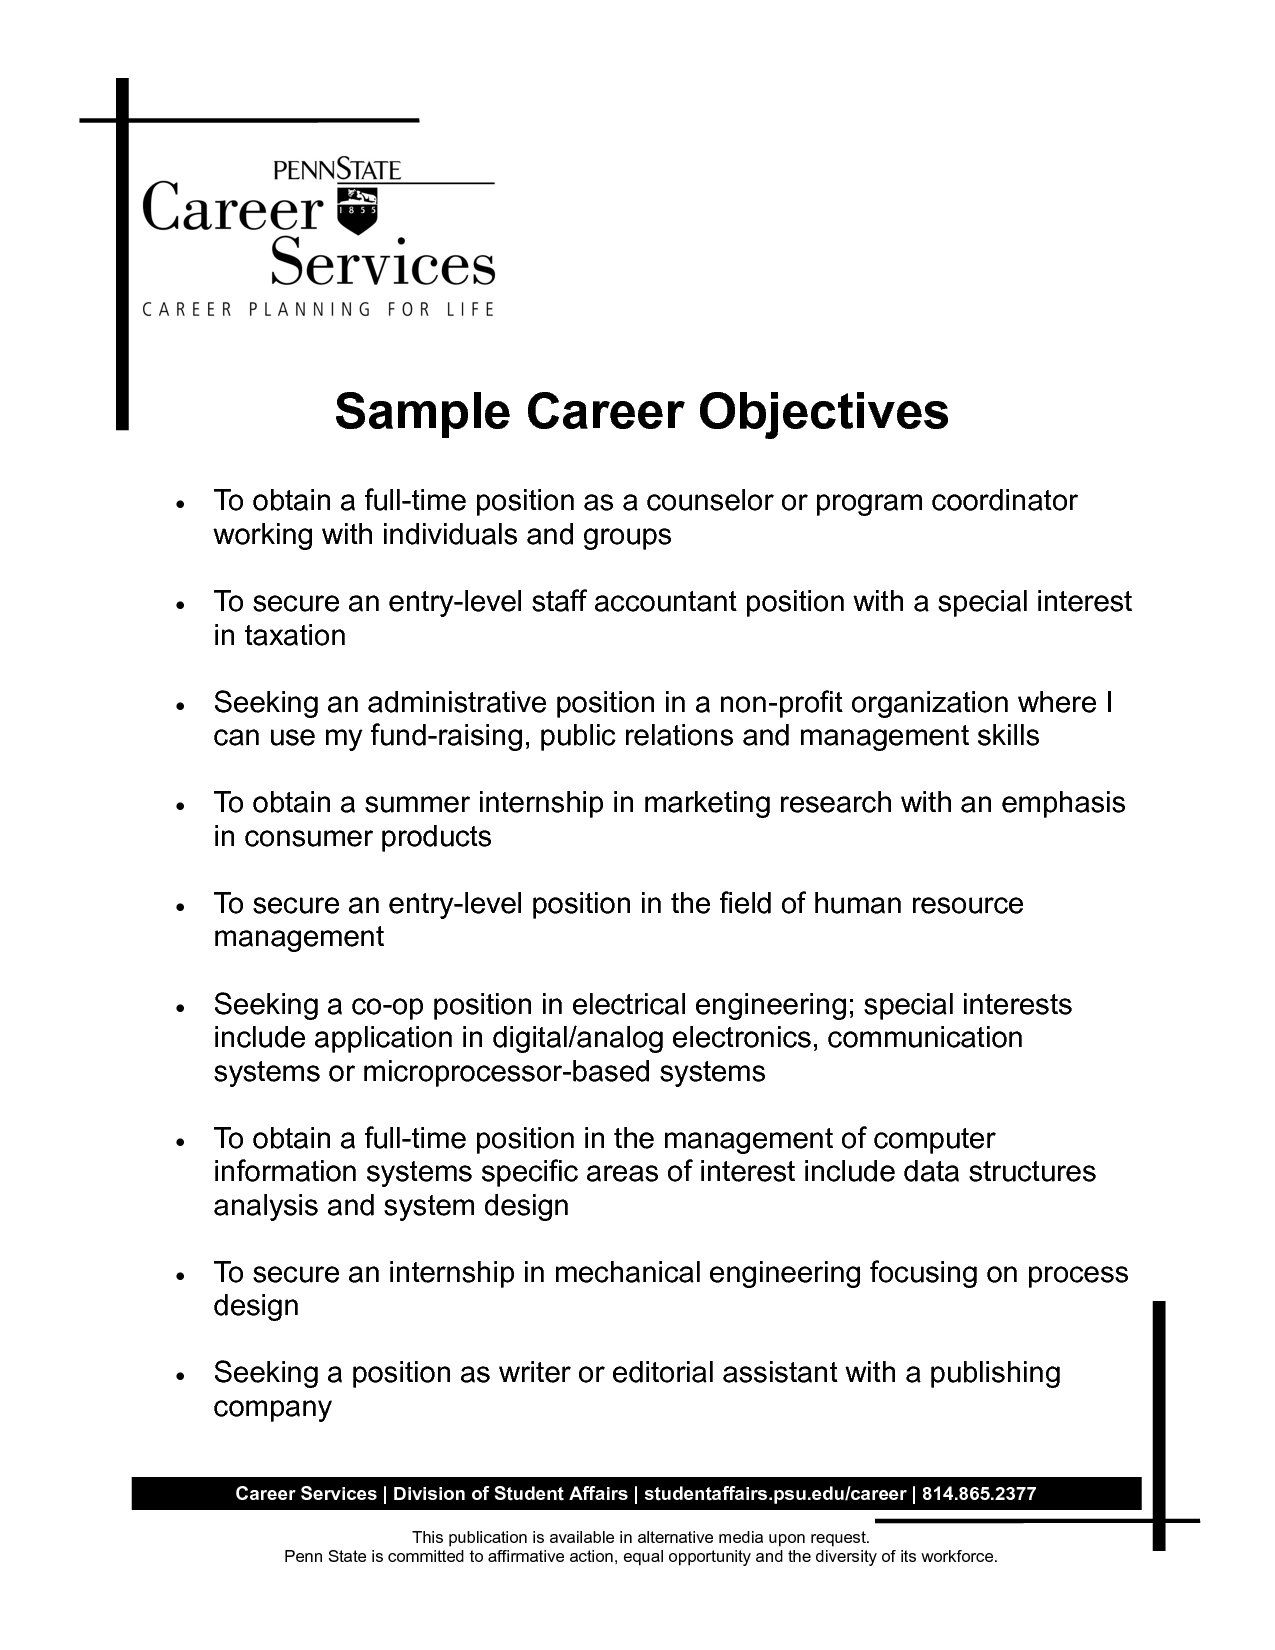 What To Write In Resume Objective How To Write Career Objective With Sample